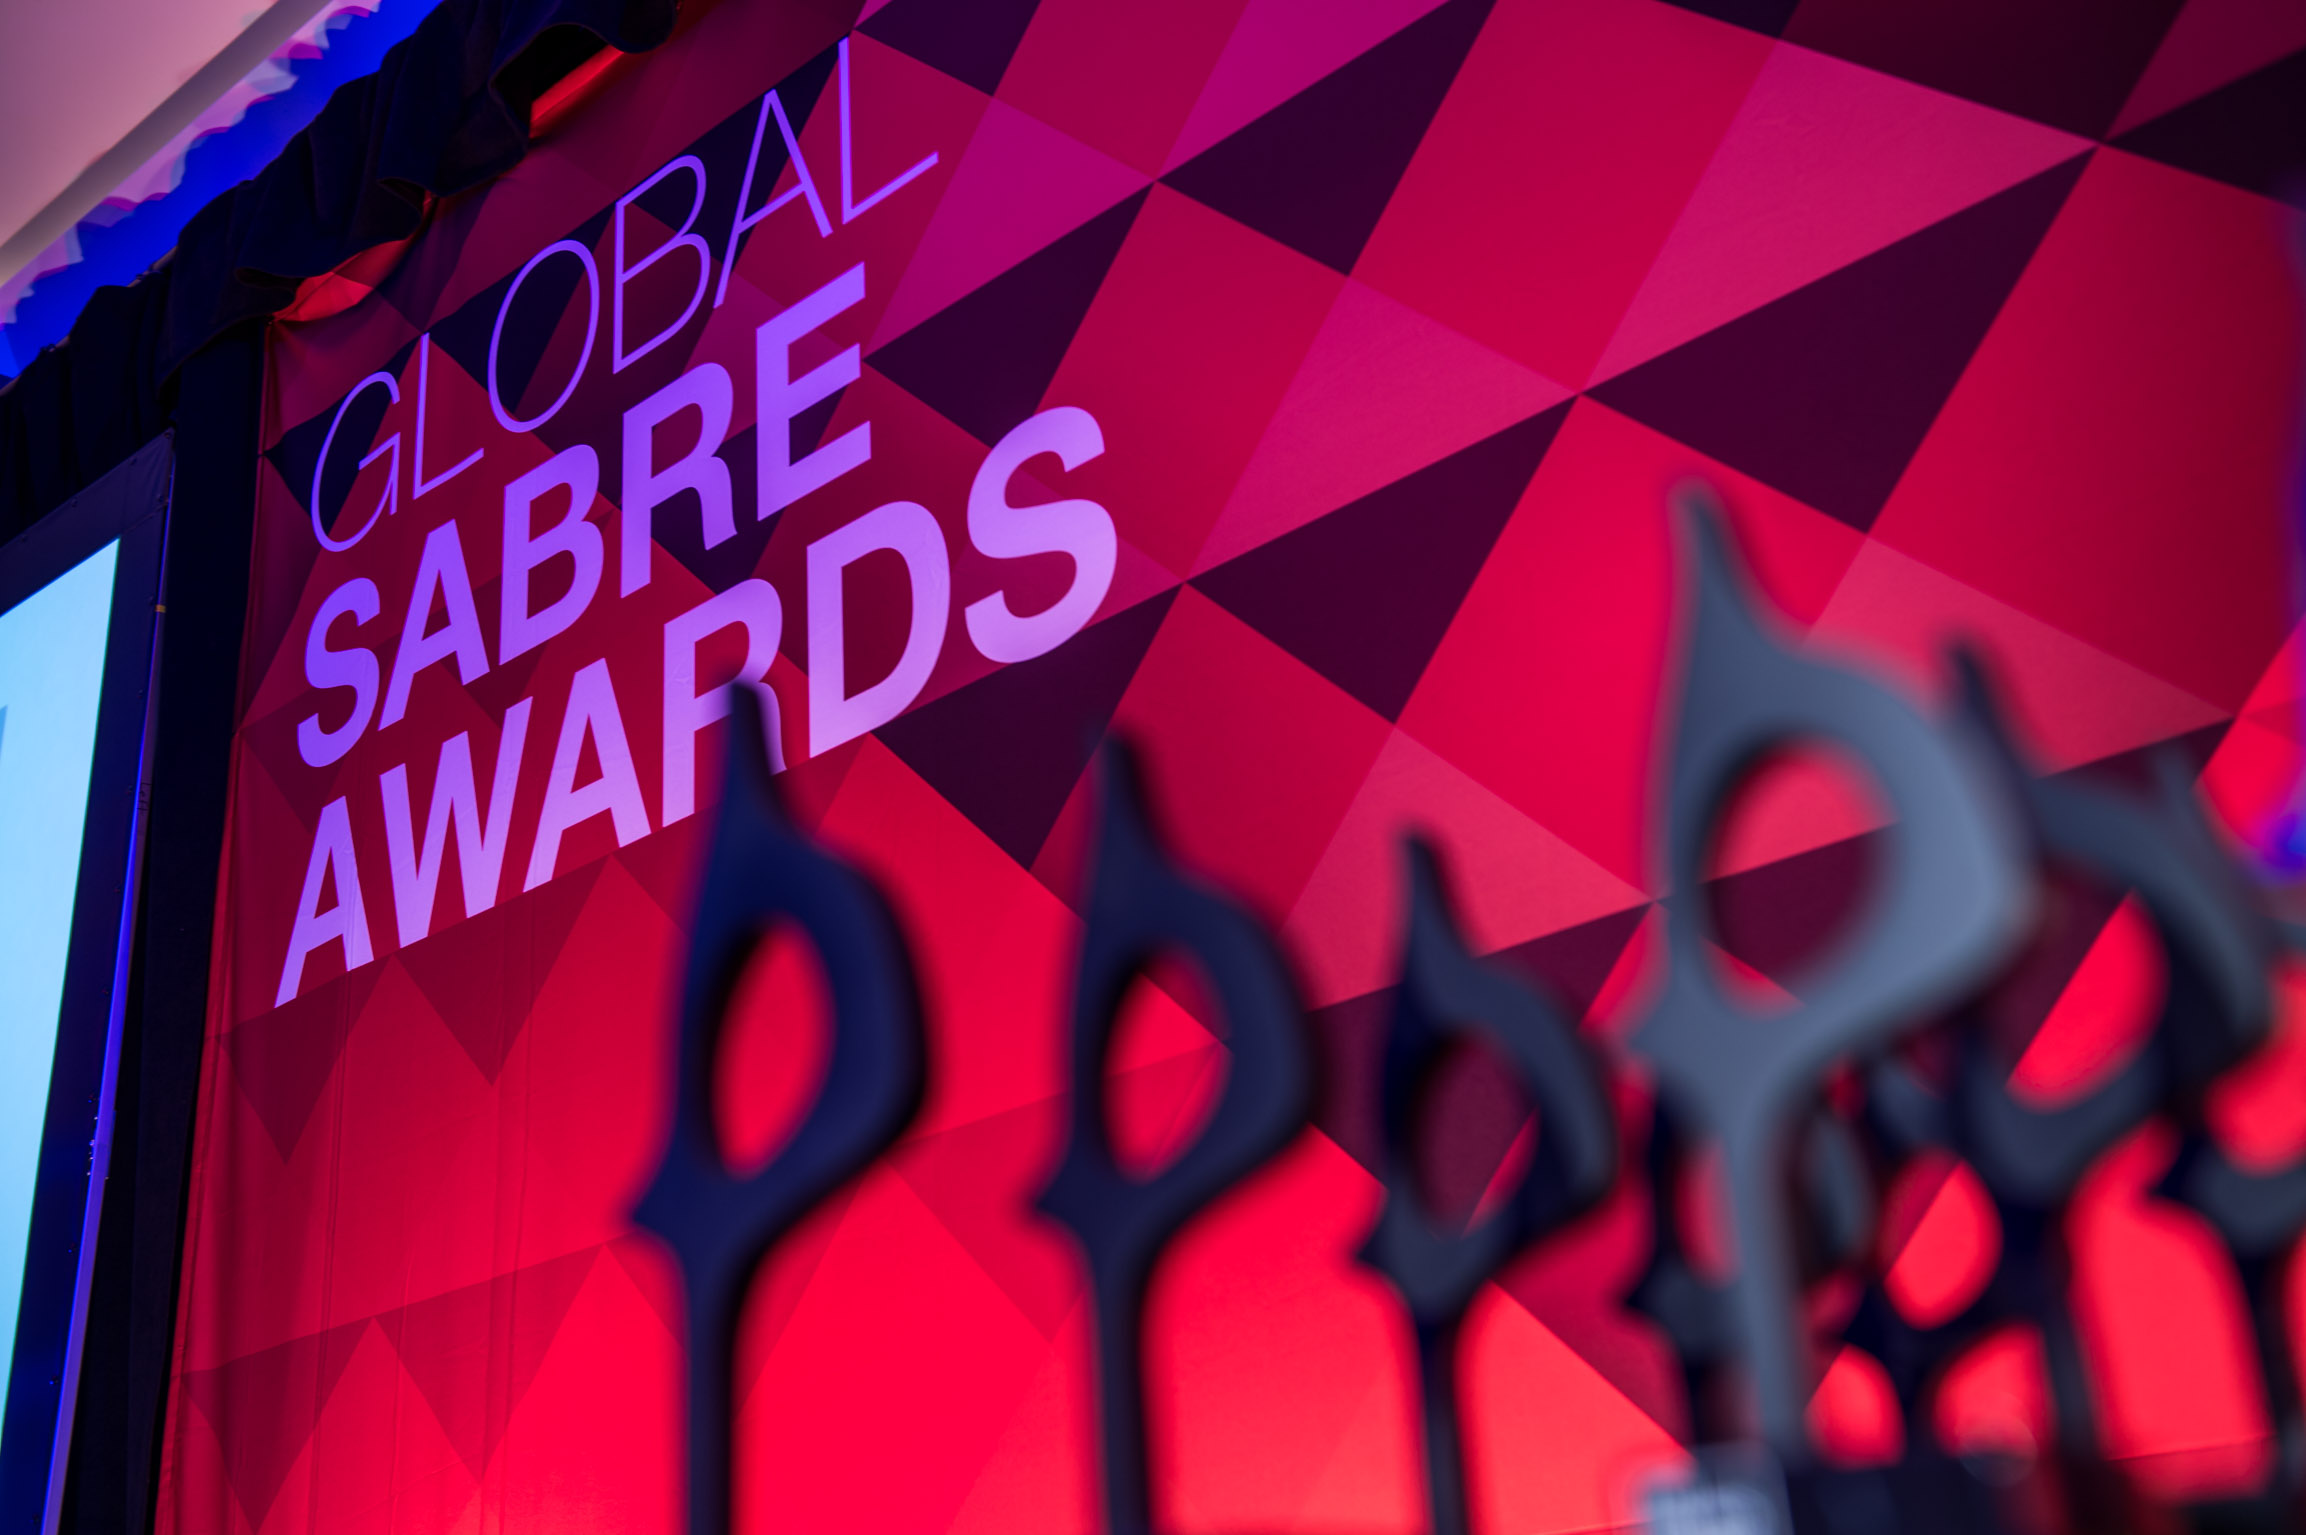 Global SABREs: World's 40 Best Campaigns To Be Ranked At 2021 PRovoke Global Summit